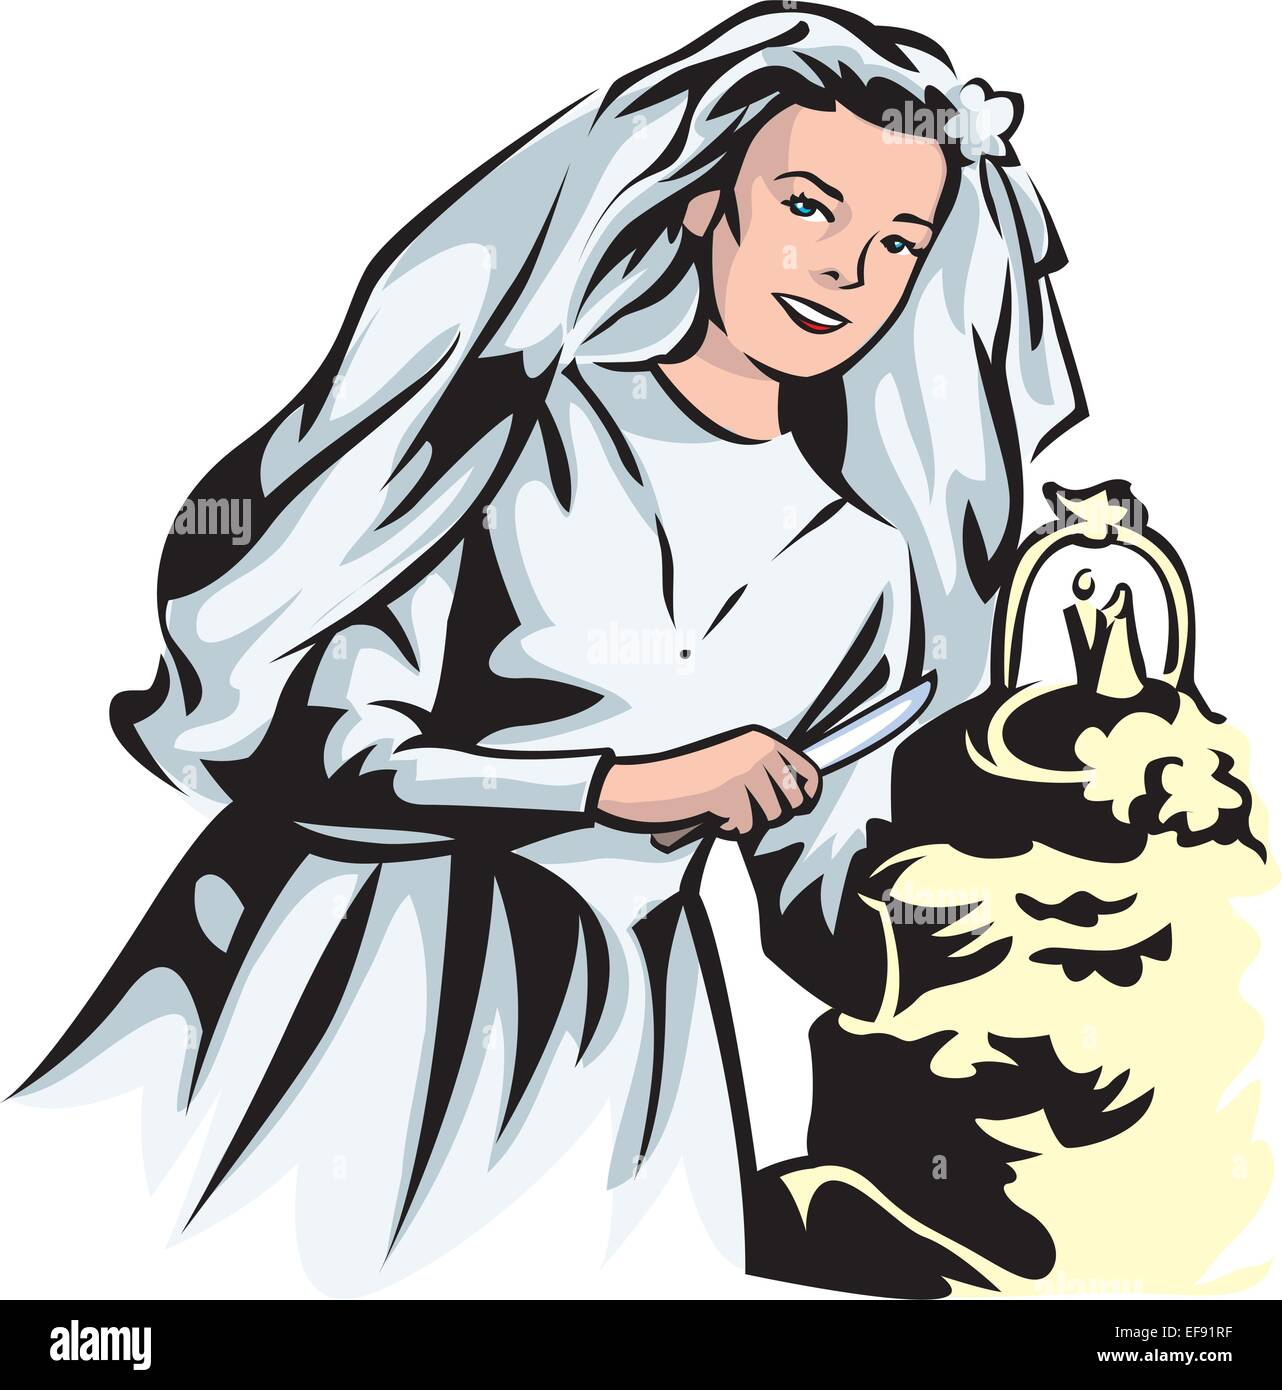 A bride cutting her cake - Stock Vector